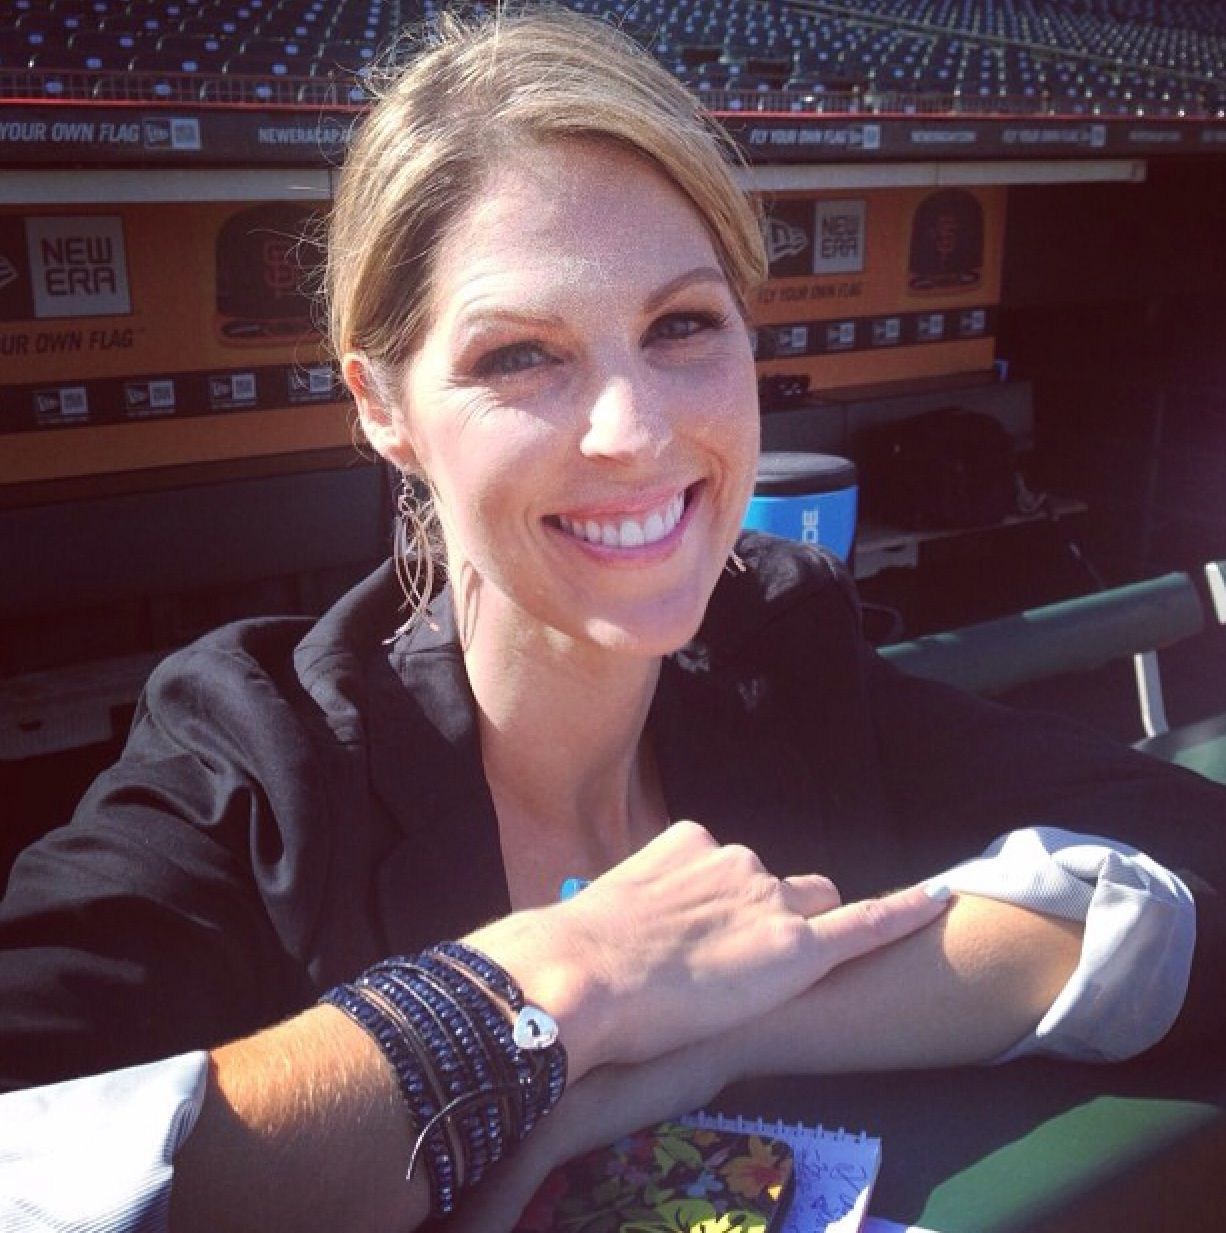 sf giants amy g how can i get a job like hers lol ❤ ⚾ ❤ sf amy g how can i get a job like hers